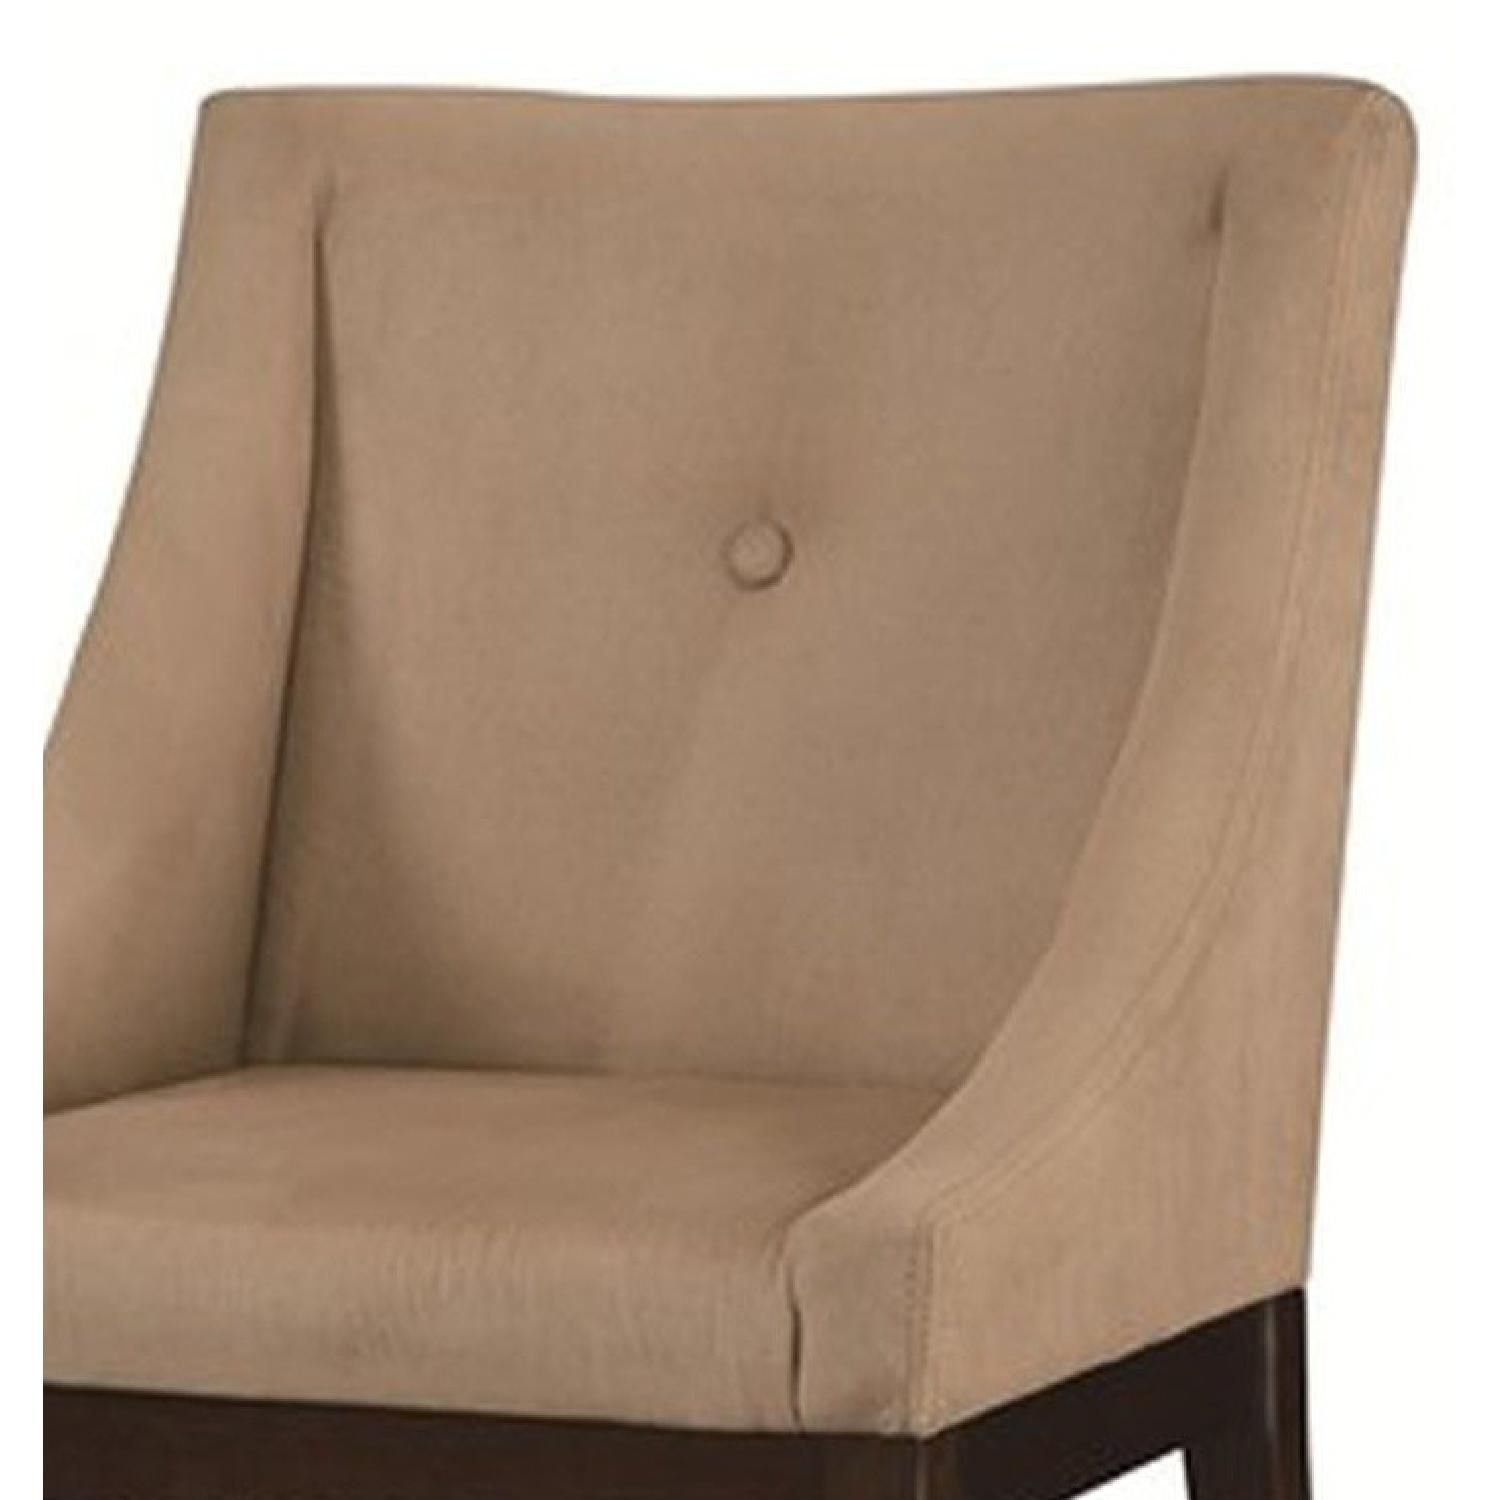 Soft Microvelvet Fabric Accent Chair in Taupe Color - image-2